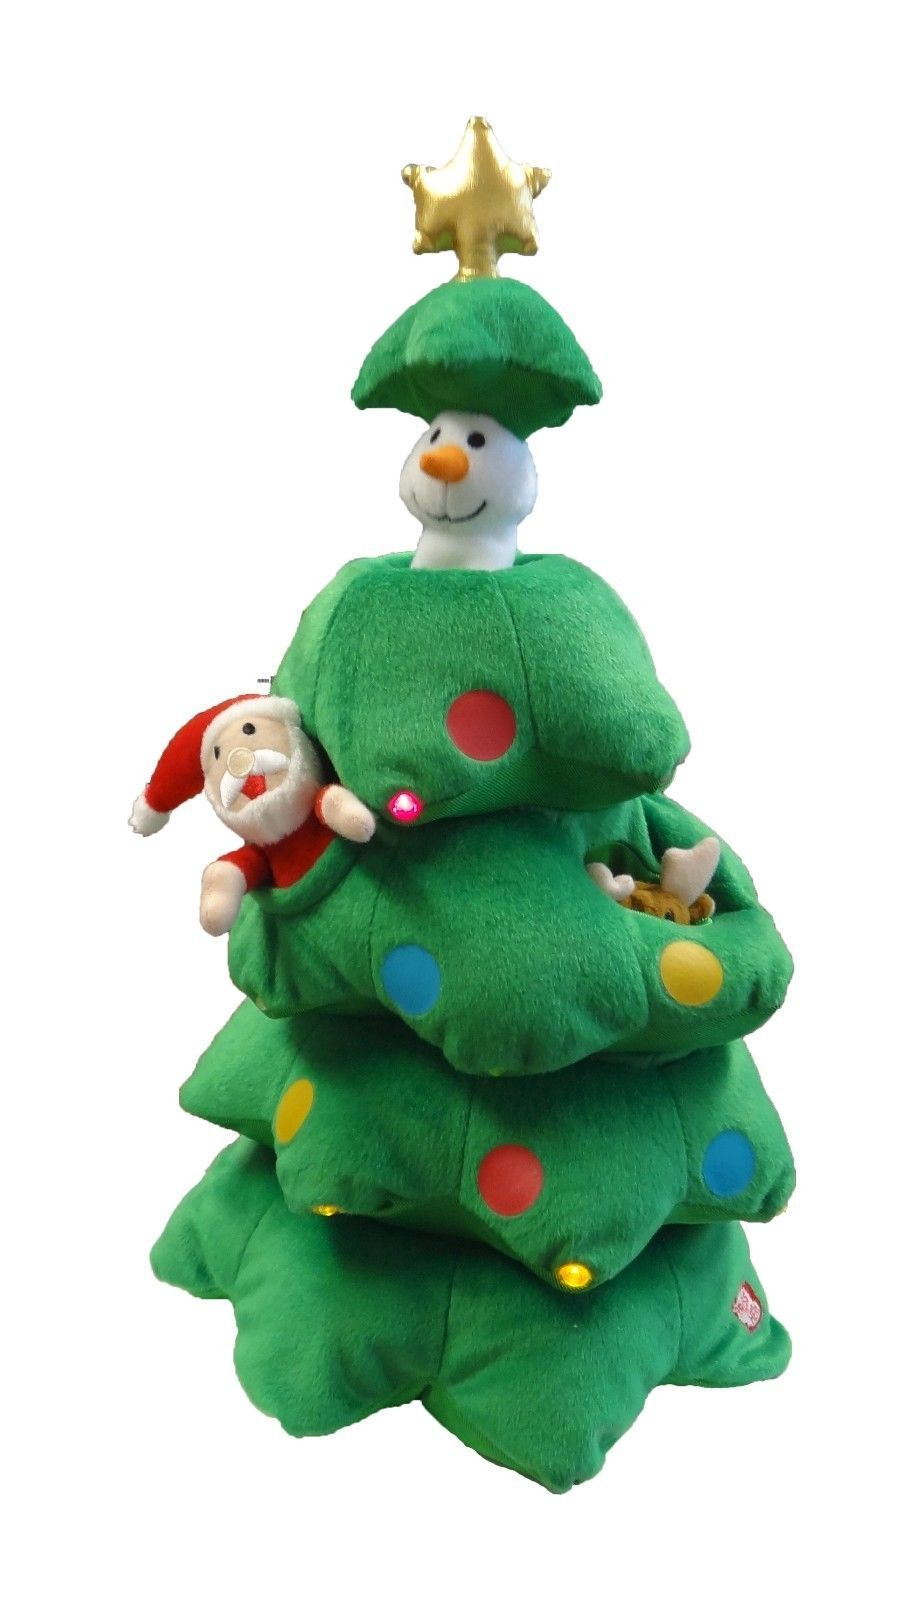 Animated Christmas Toys : Singing christmas tree animated plush toy musical reindeer